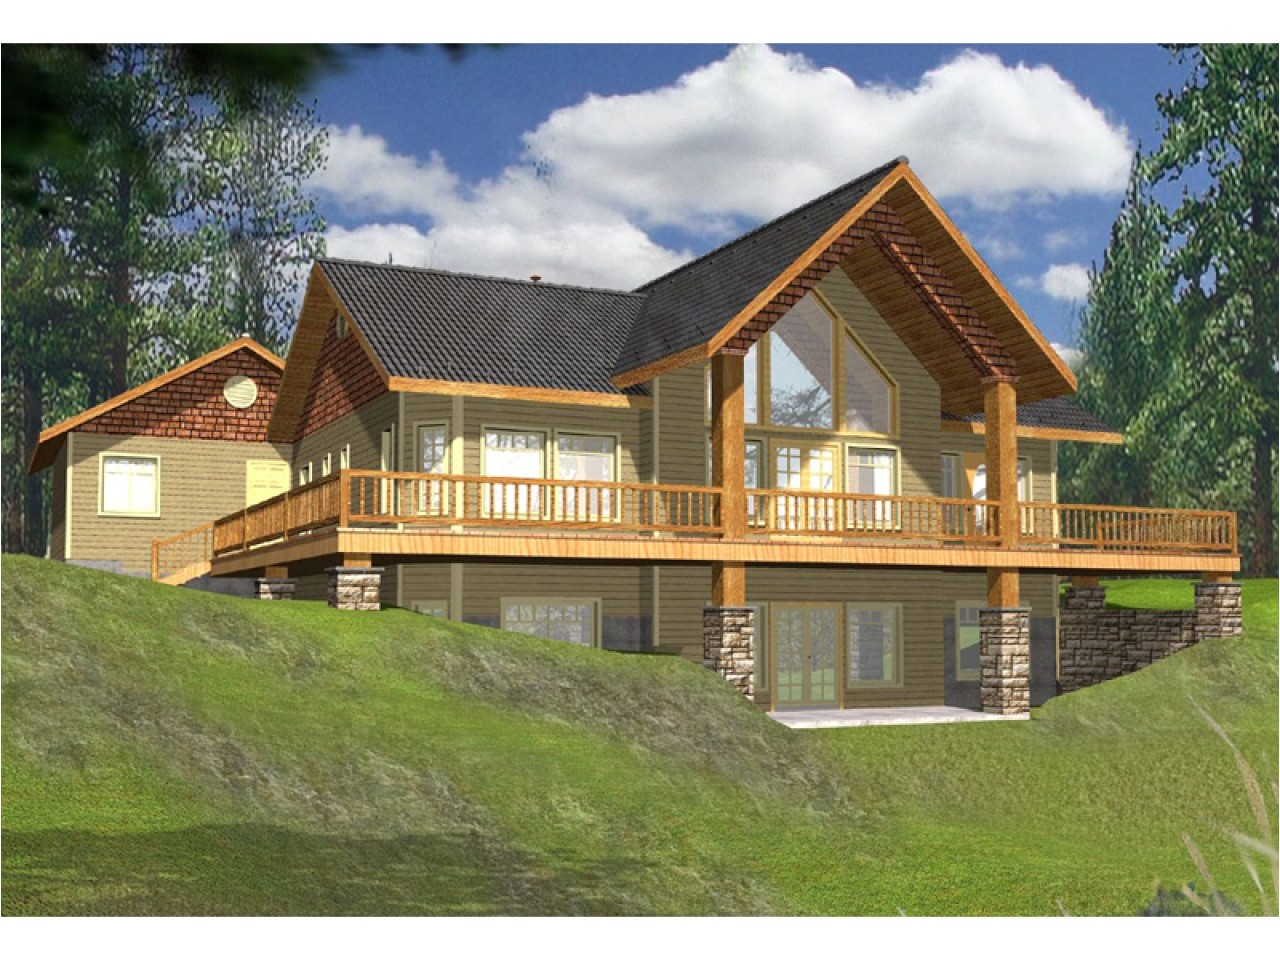 6e011a6a06270e44 lake house plans with open floor plans lake house plans with wrap around porch